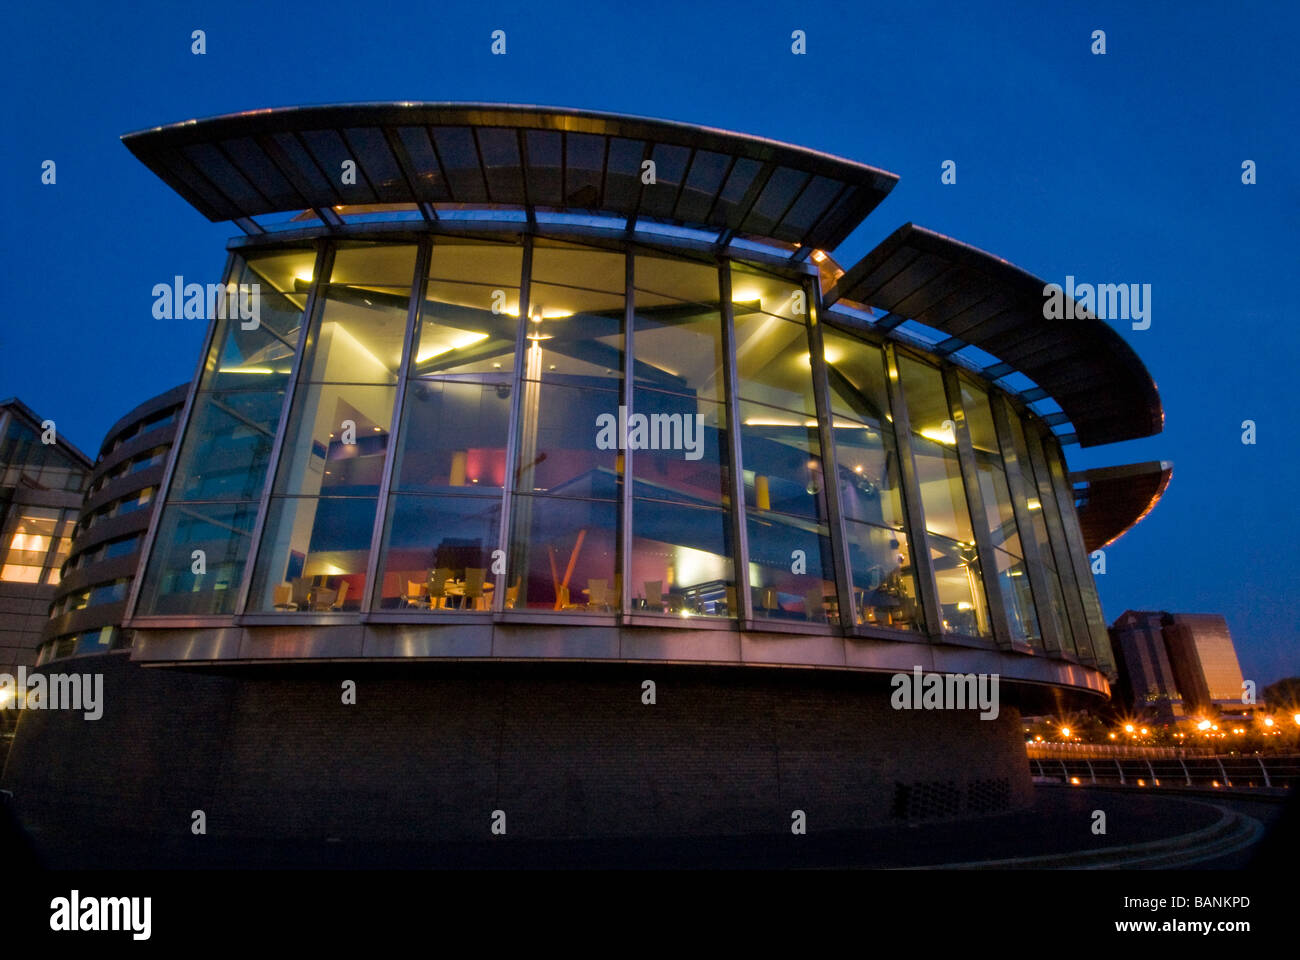 The Lowry Centre window lit up at night, Salford Quays, Manchester, England, UK - Stock Image